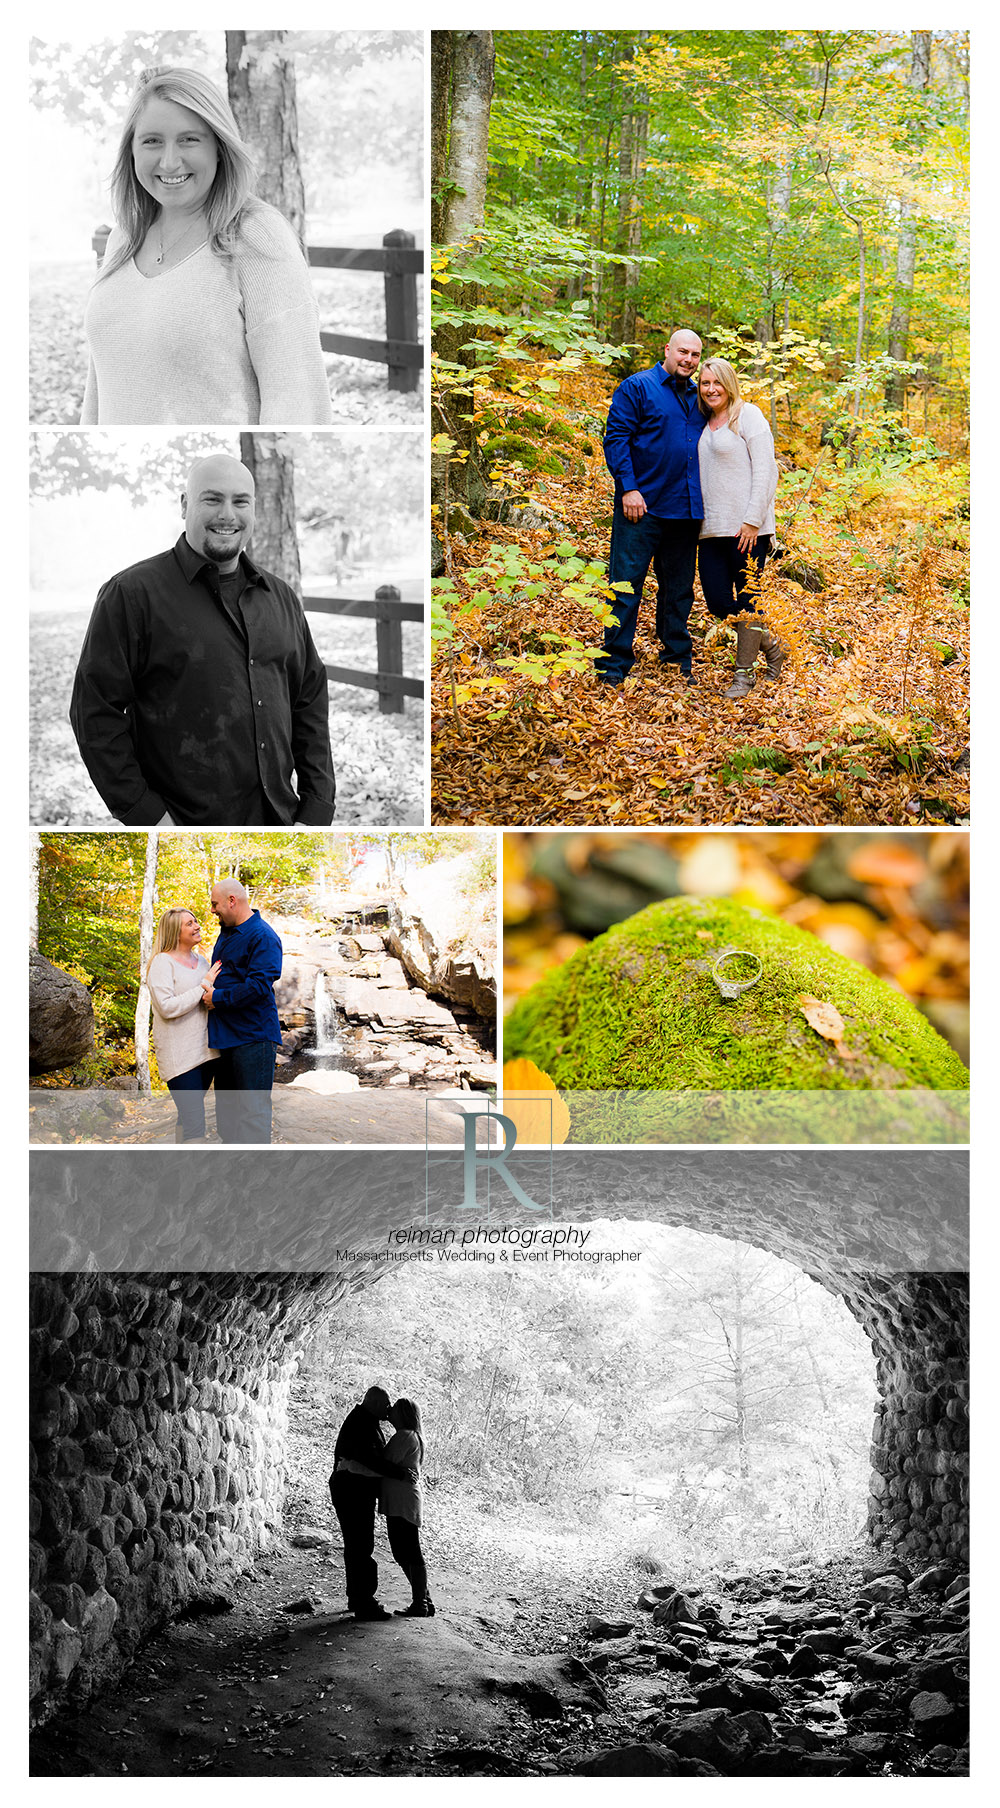 Devil's Hopyard, Engagement Session, Reiman Photography, Fall